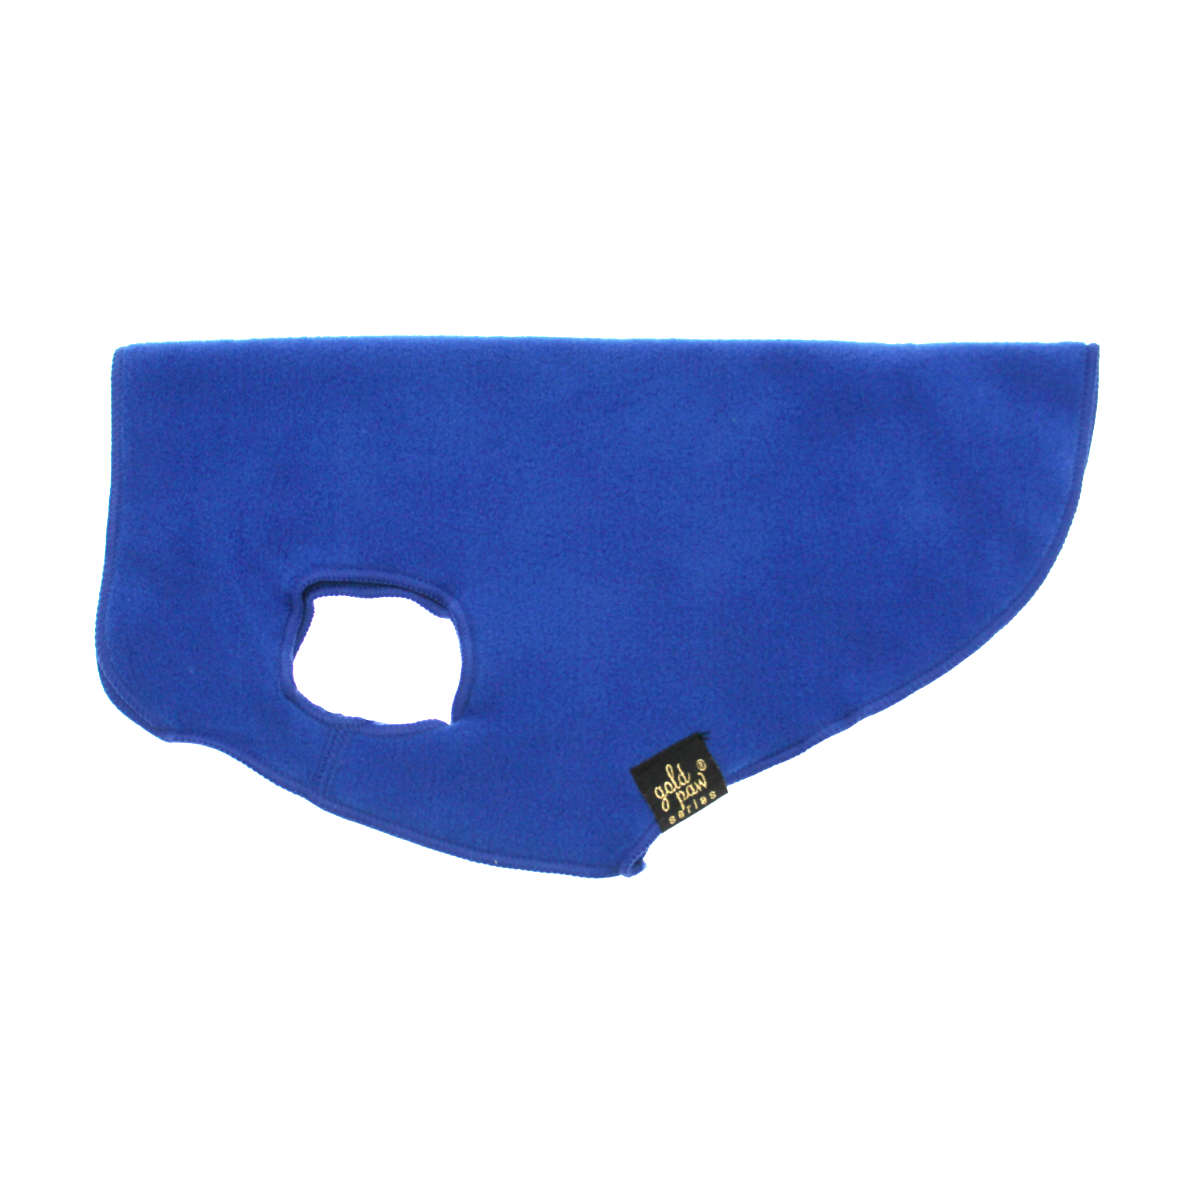 Gold Paw Fleece Dog Jacket - Cobalt Blue